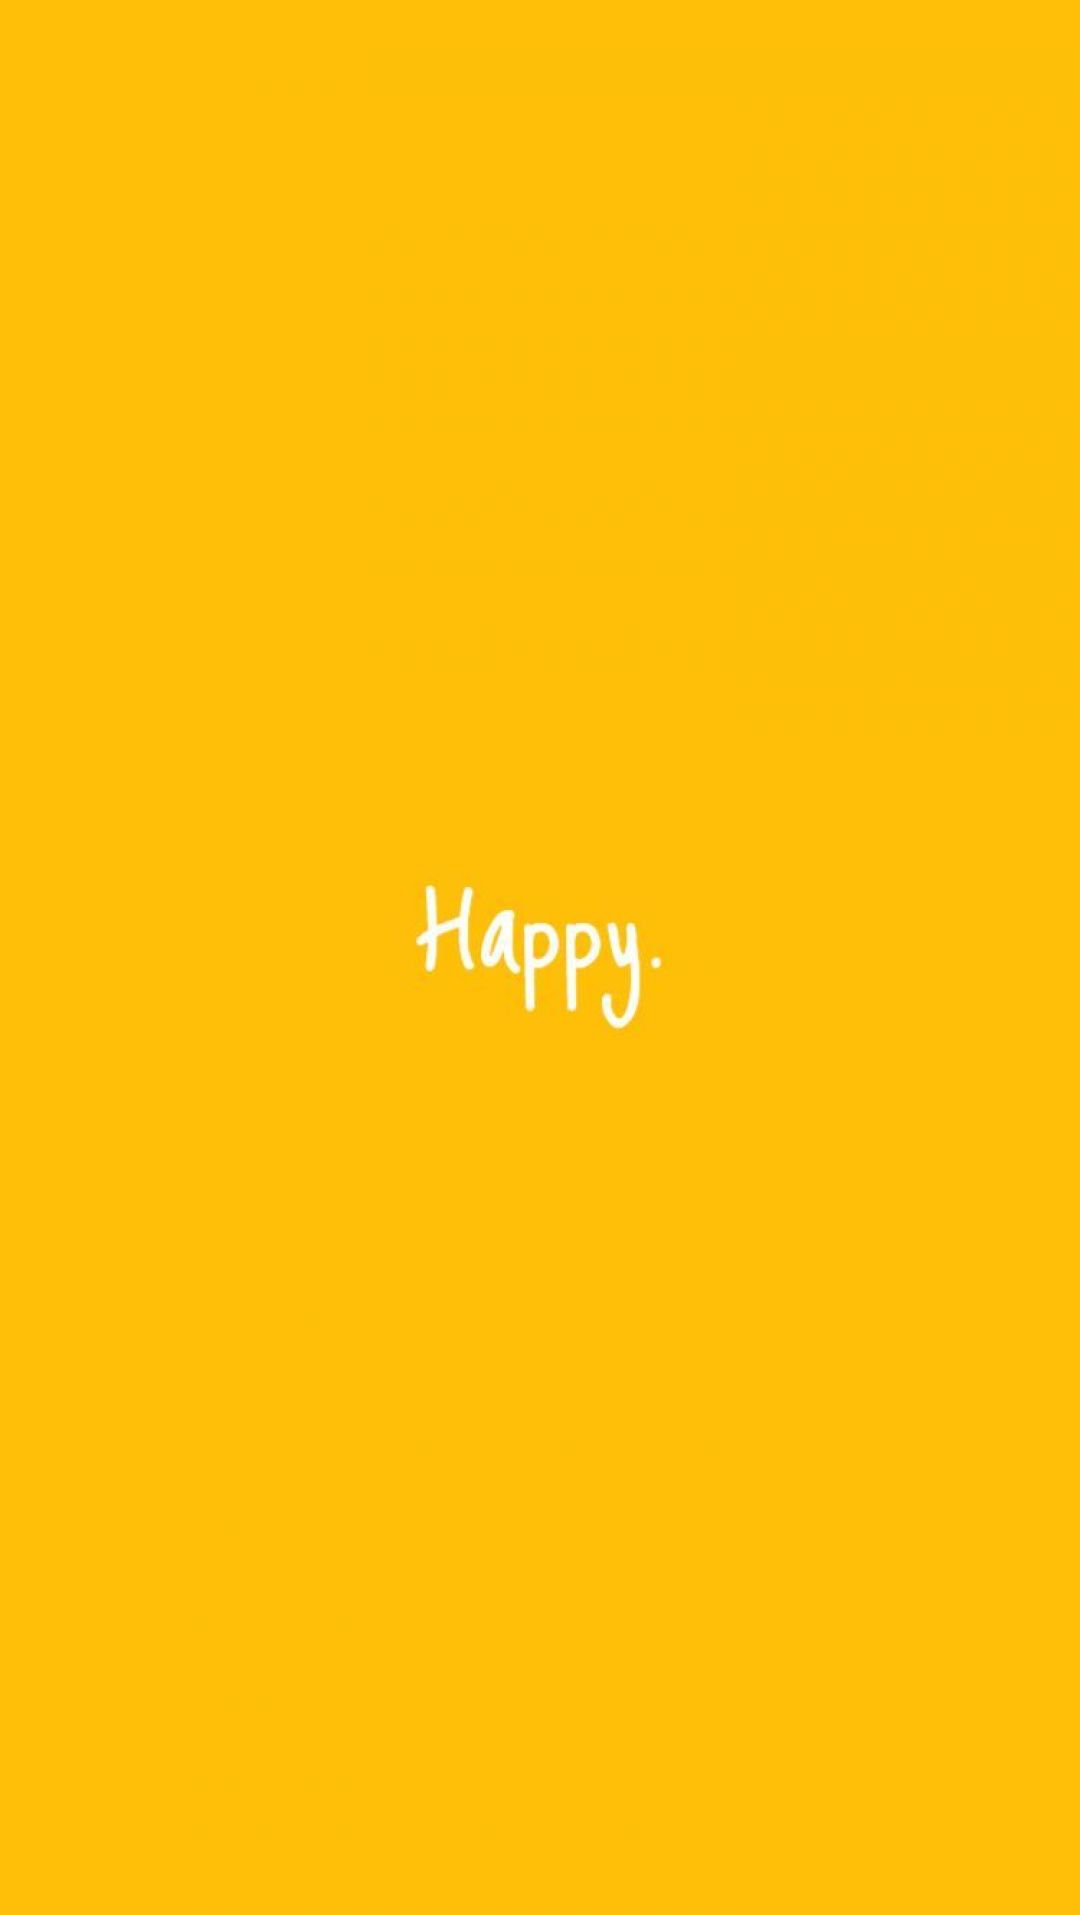 yellow aestheticandroid iphone desktop hd backgrounds wallpapers 1080p 4k 7azae